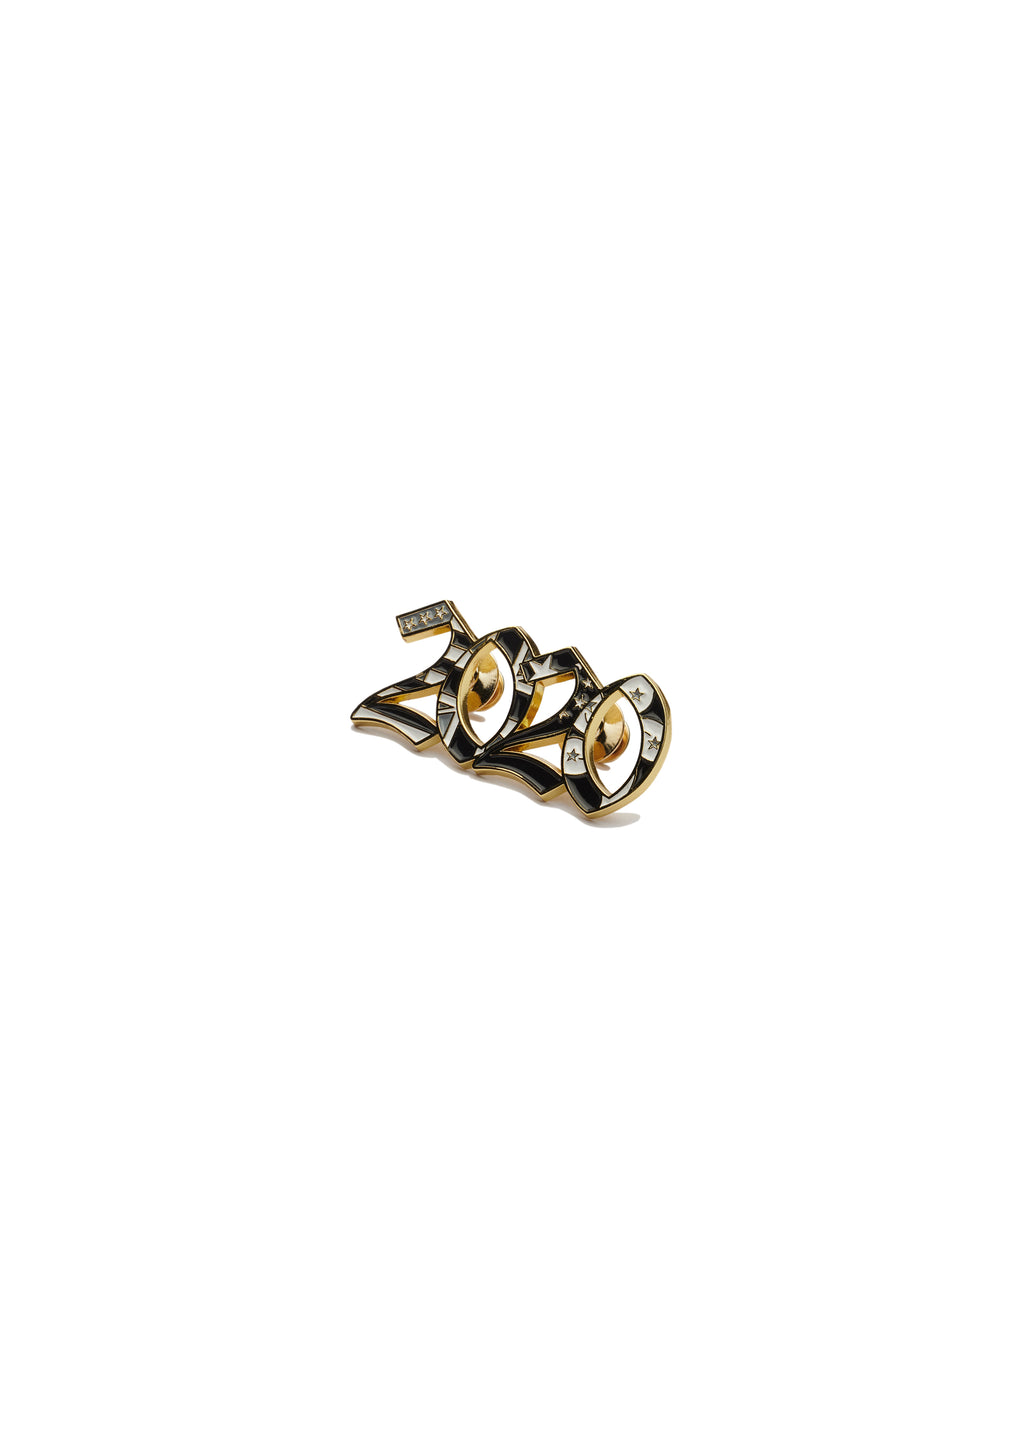 2020 Pin Badges